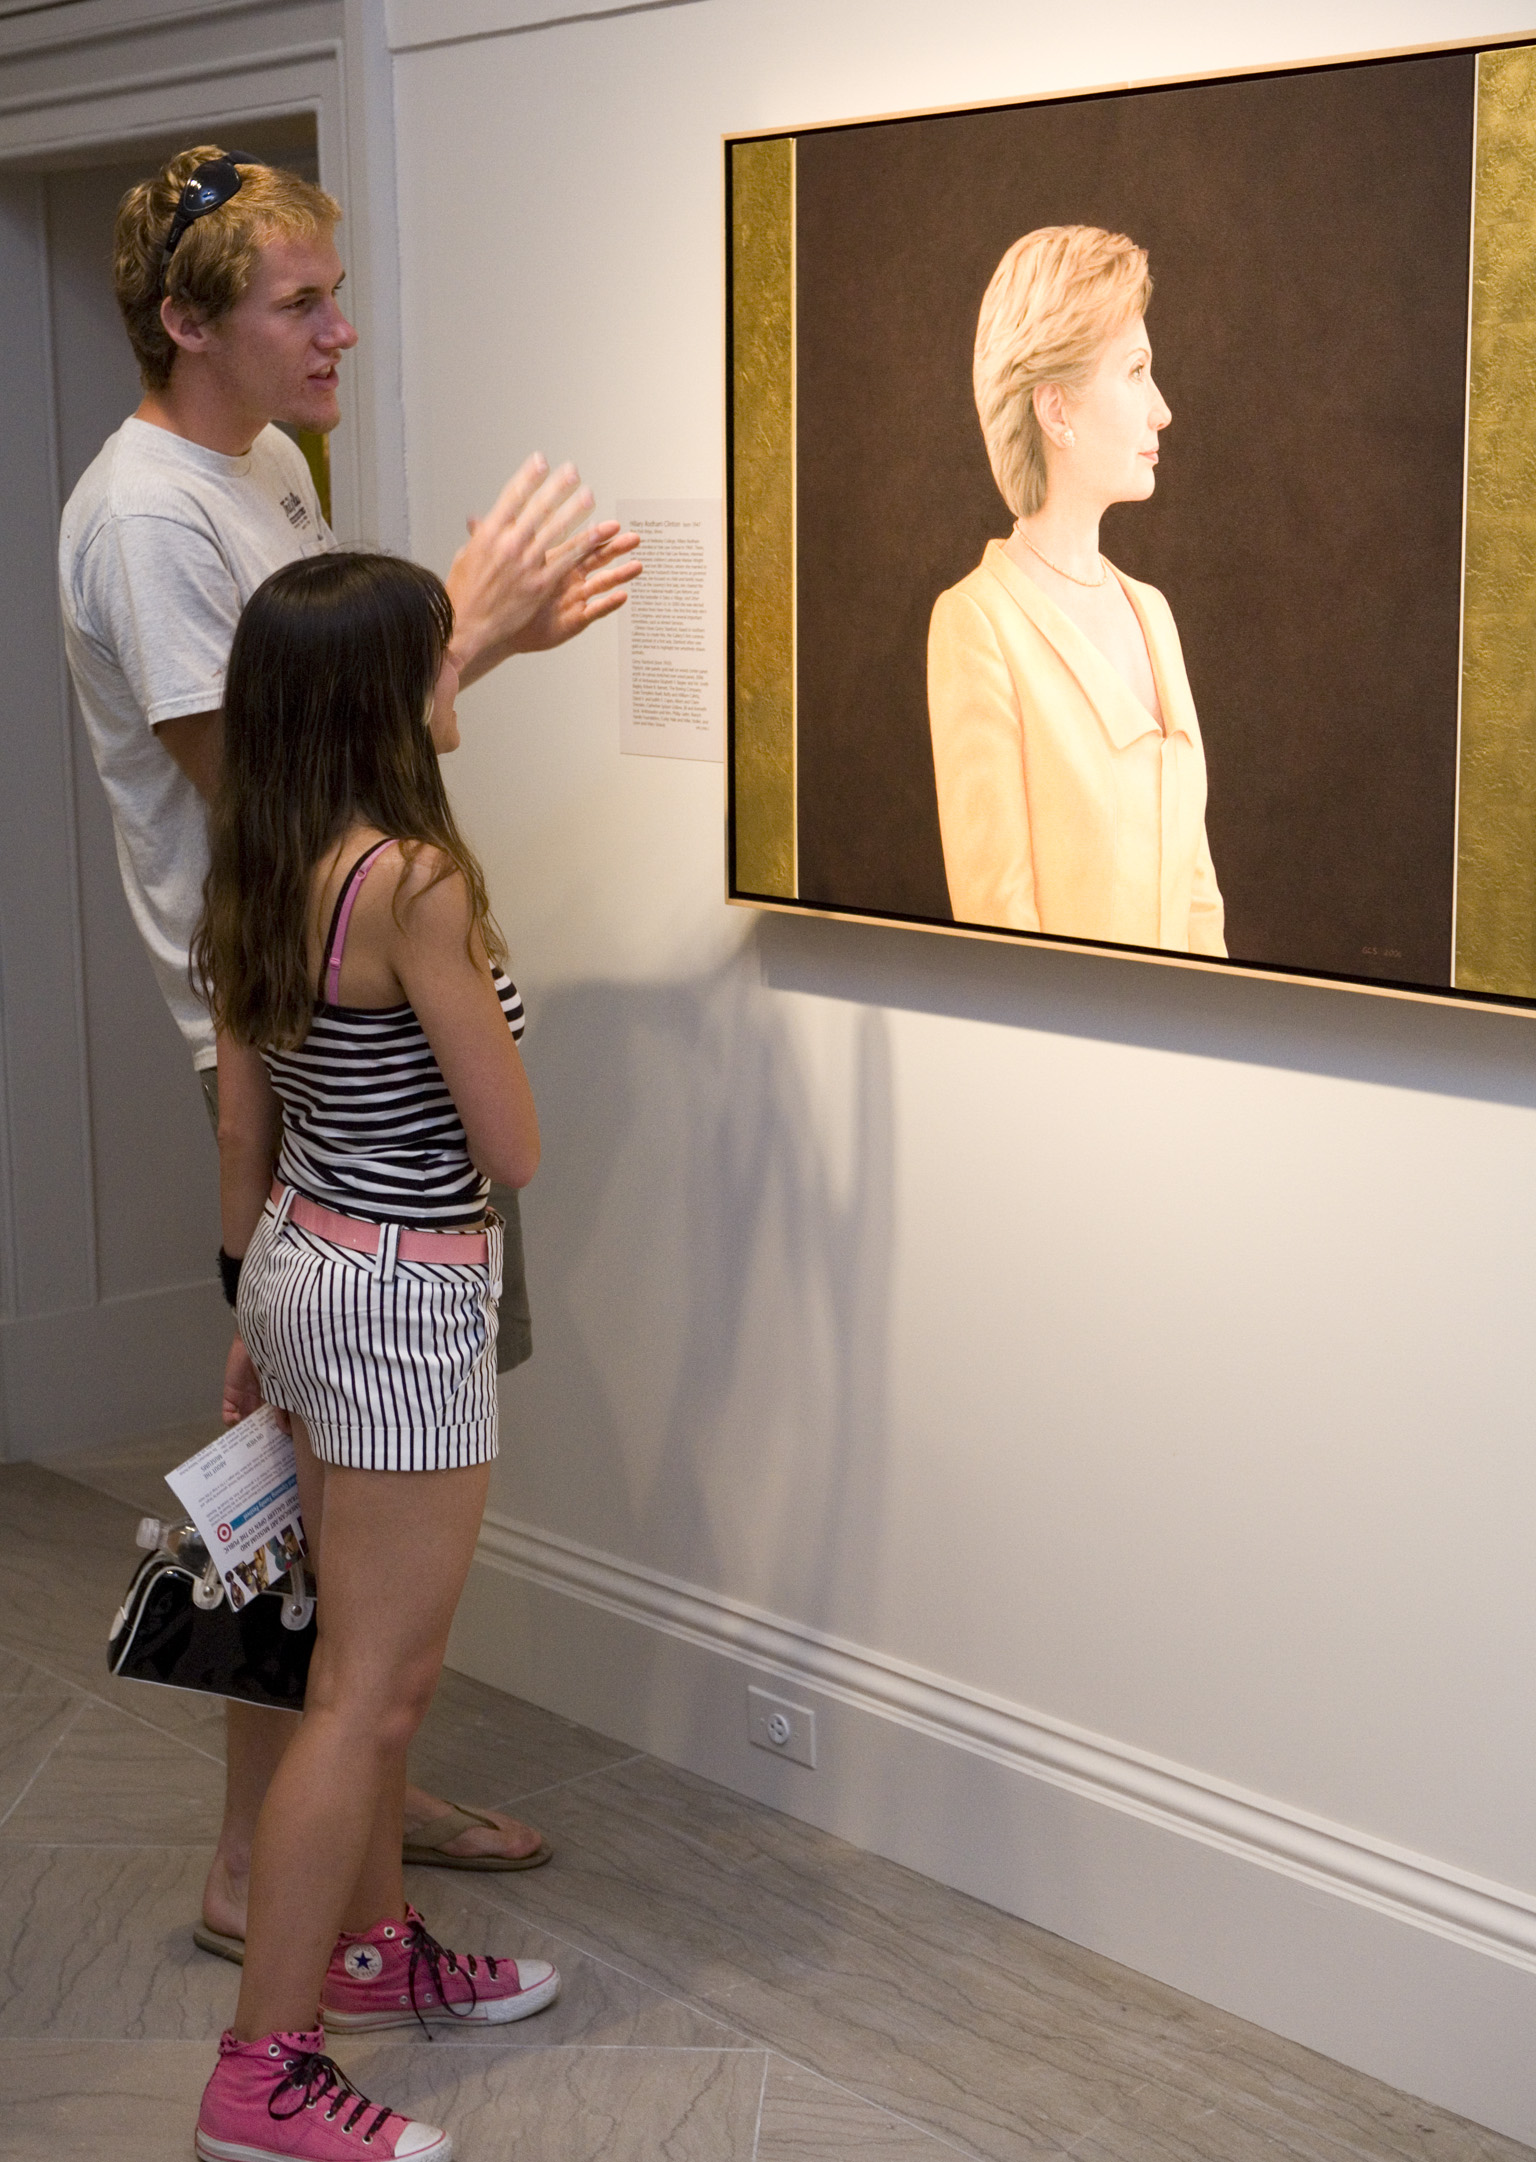 A man and woman look at a portrait of Hillary Rodham Clinton.